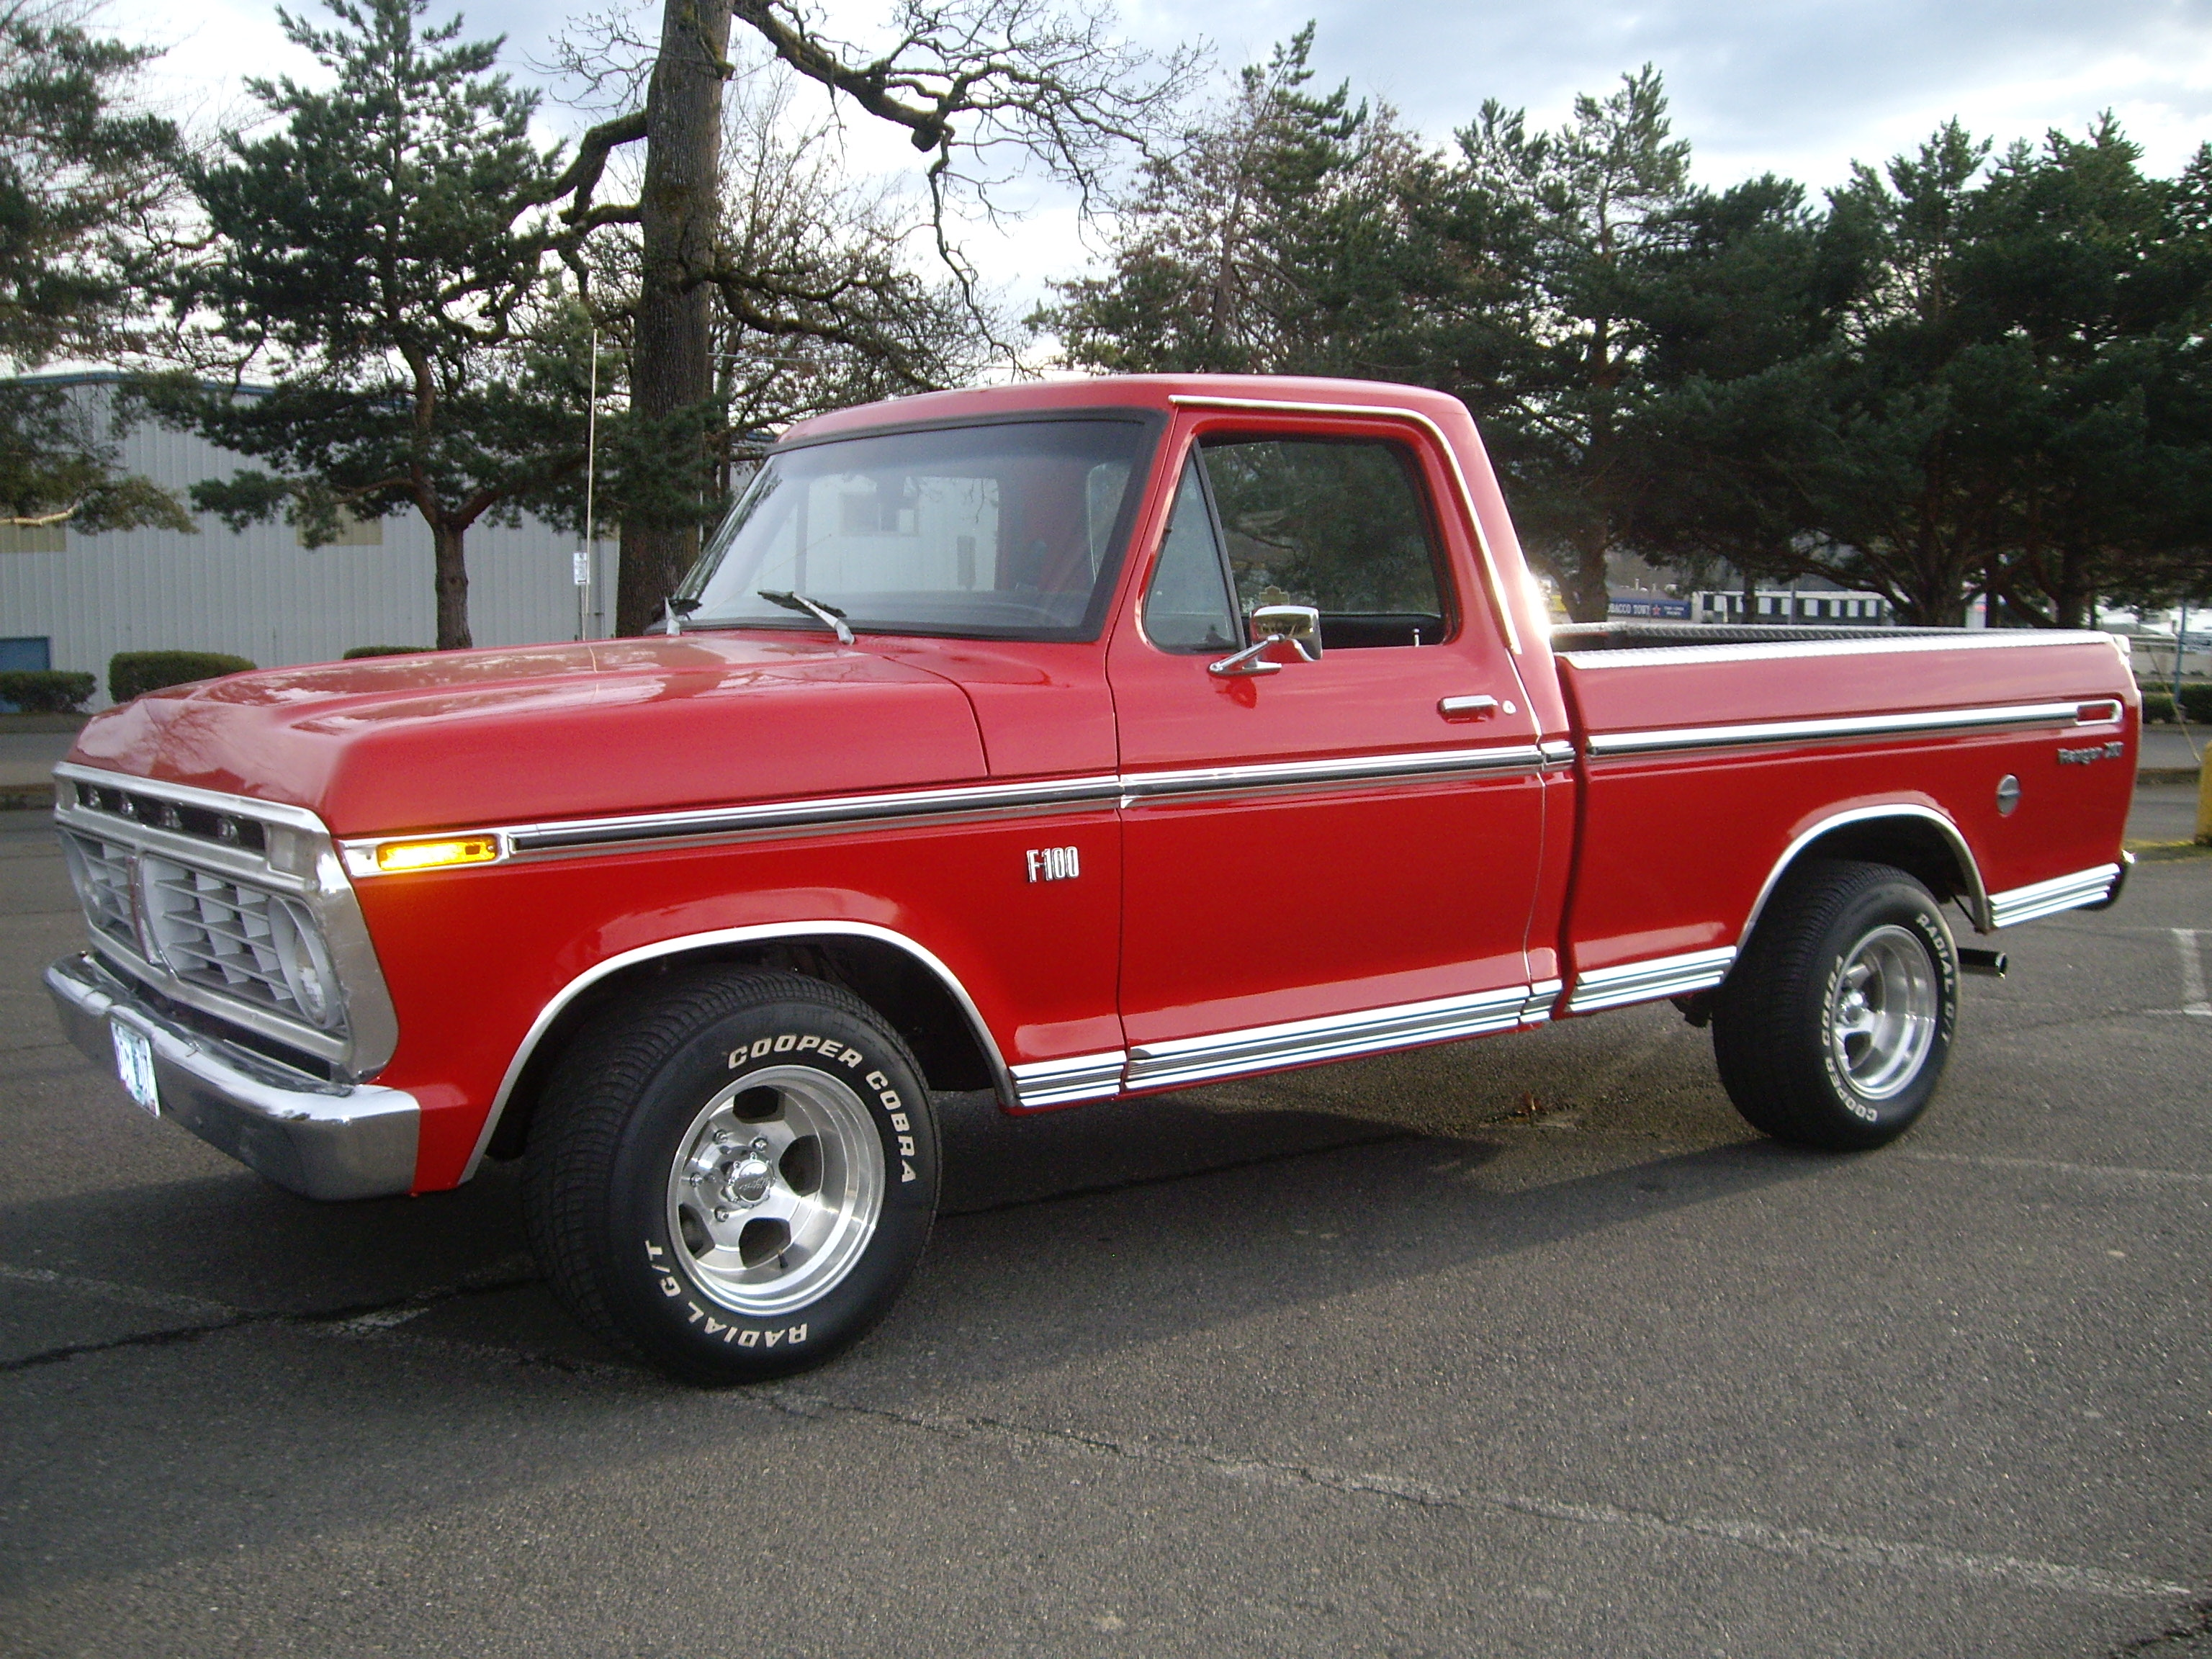 Ford f-100 1973 photo - 4